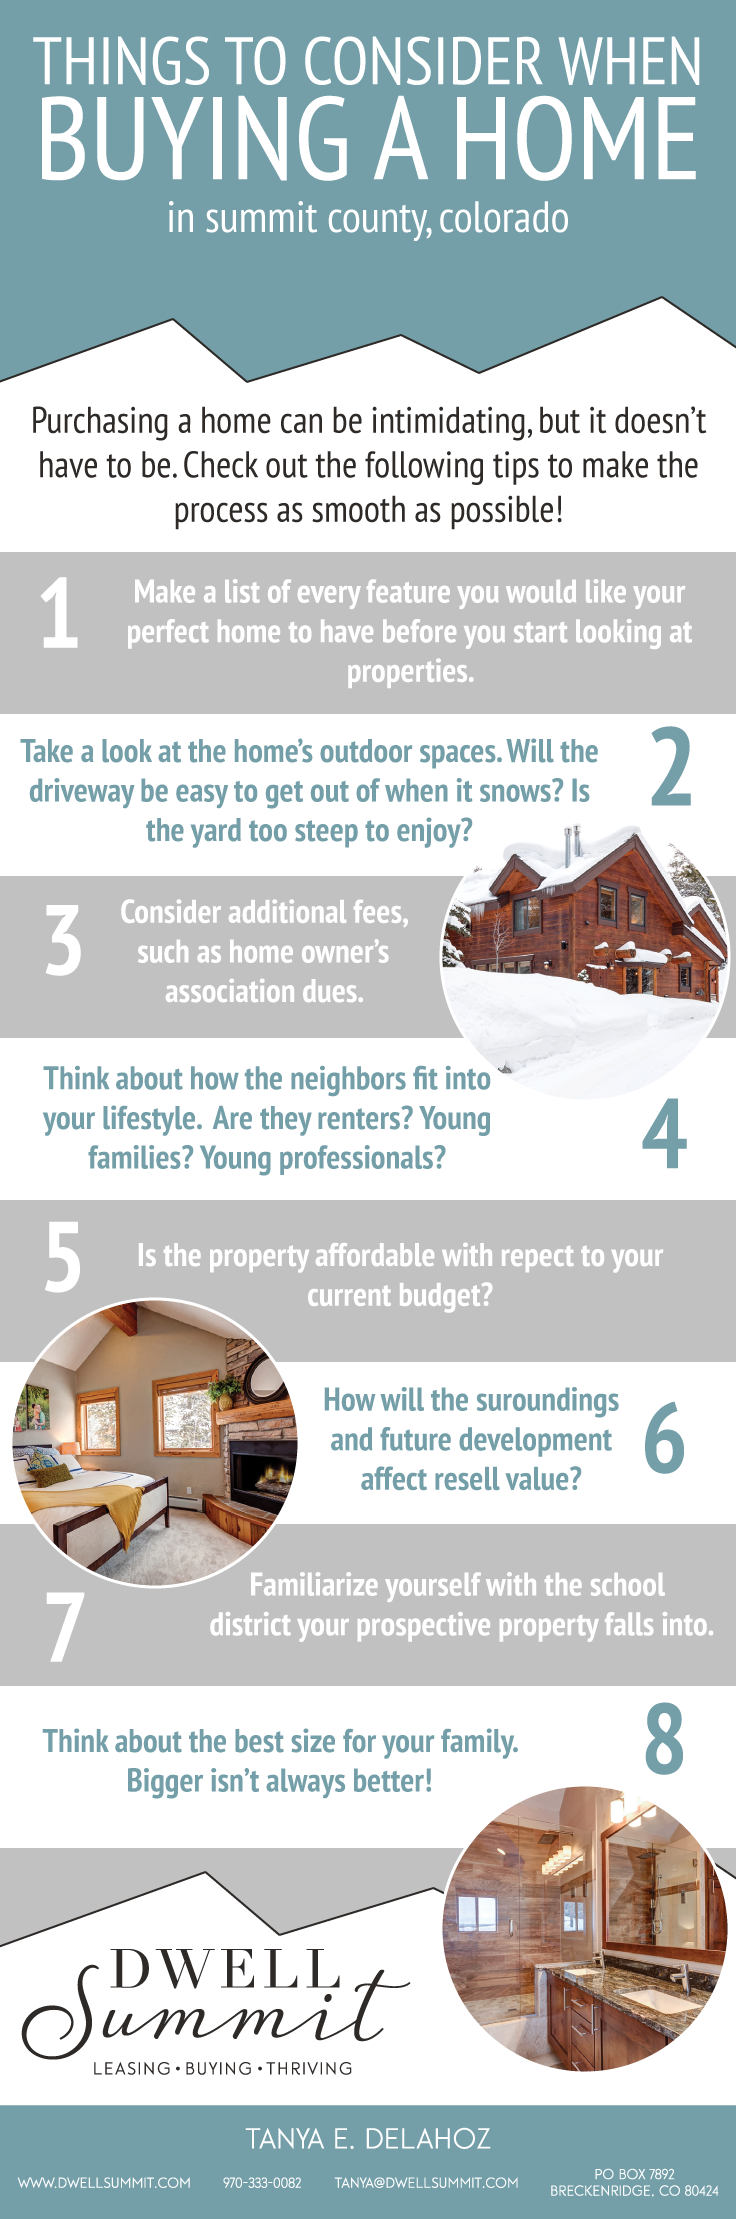 Things To Consider When Buying A Home In Summit County Colorado